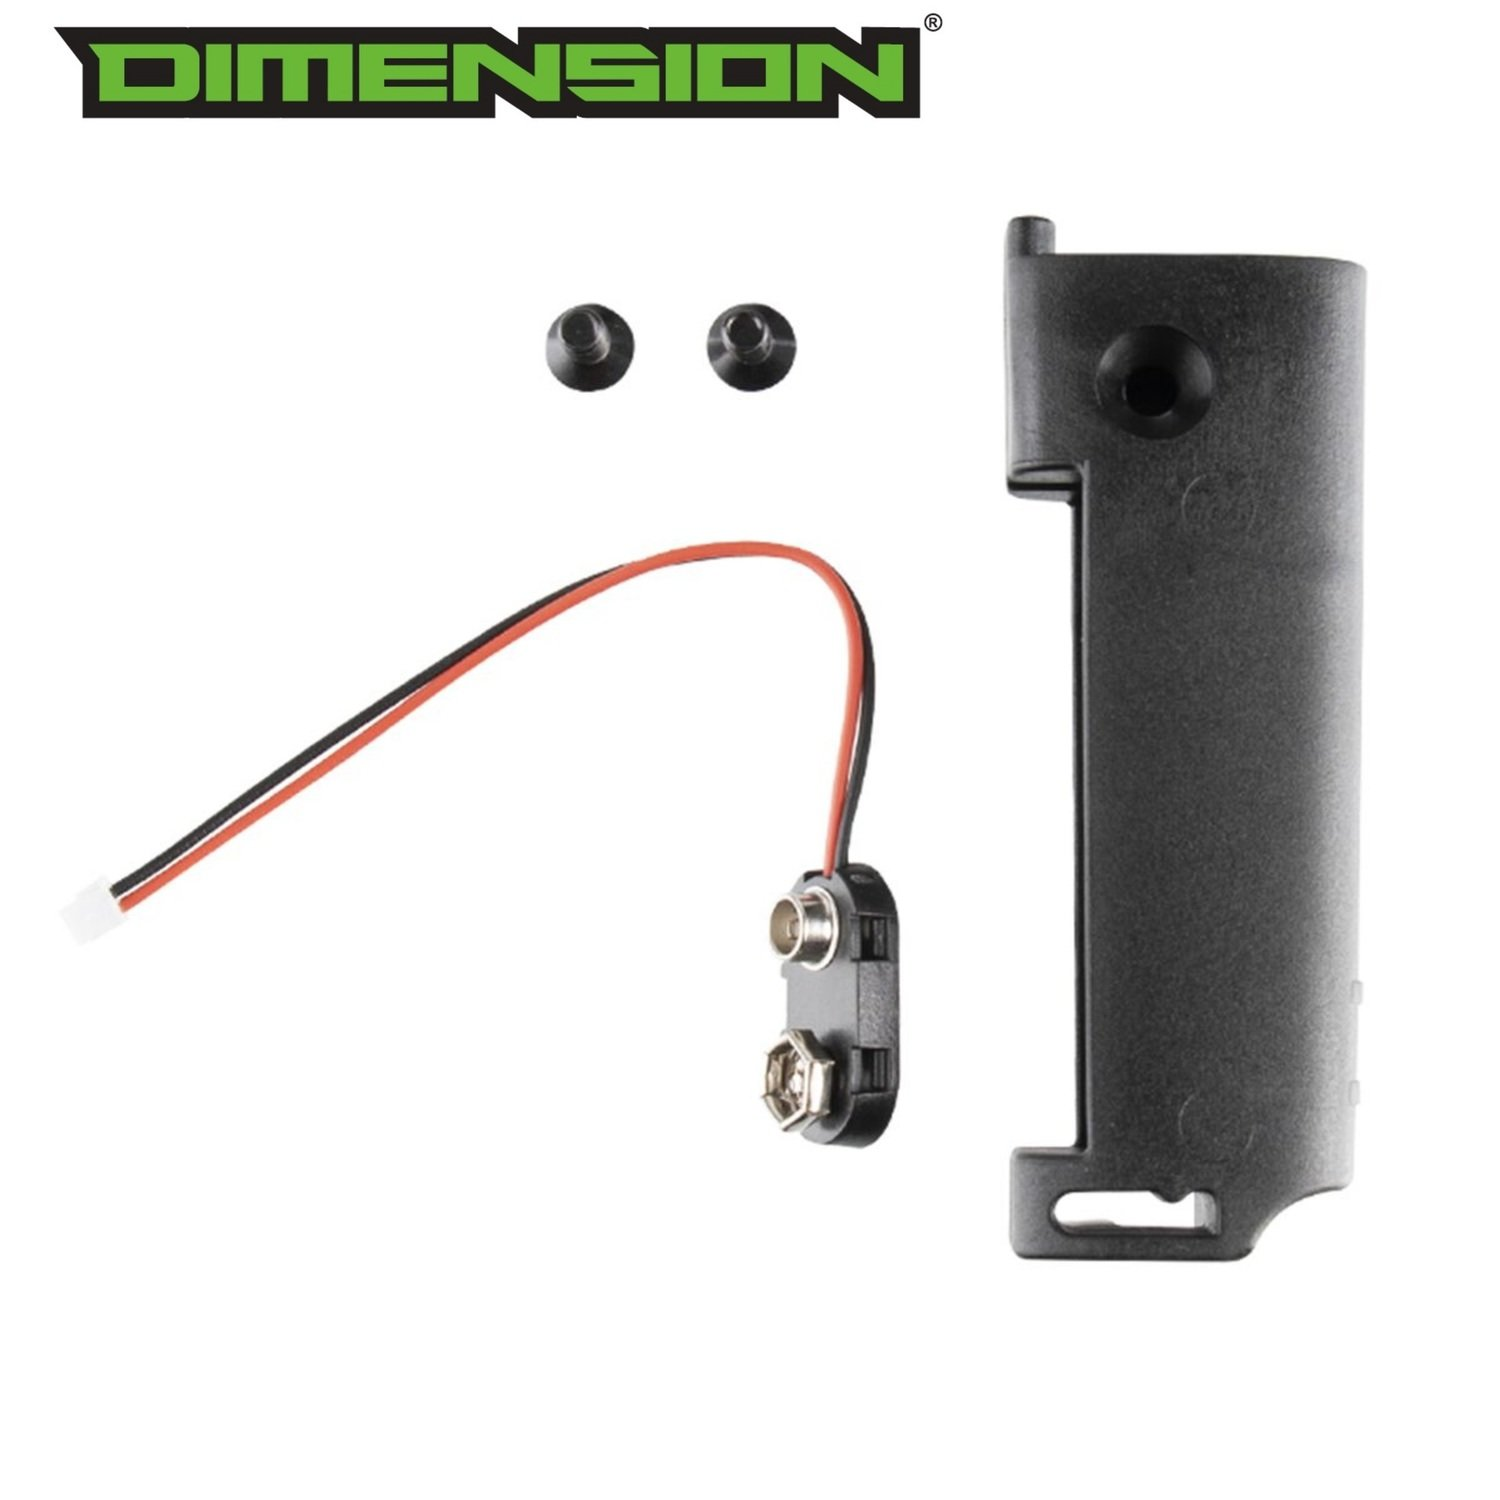 Dye DSR Repair Battery Housing kit ( Factory Replacement Part )